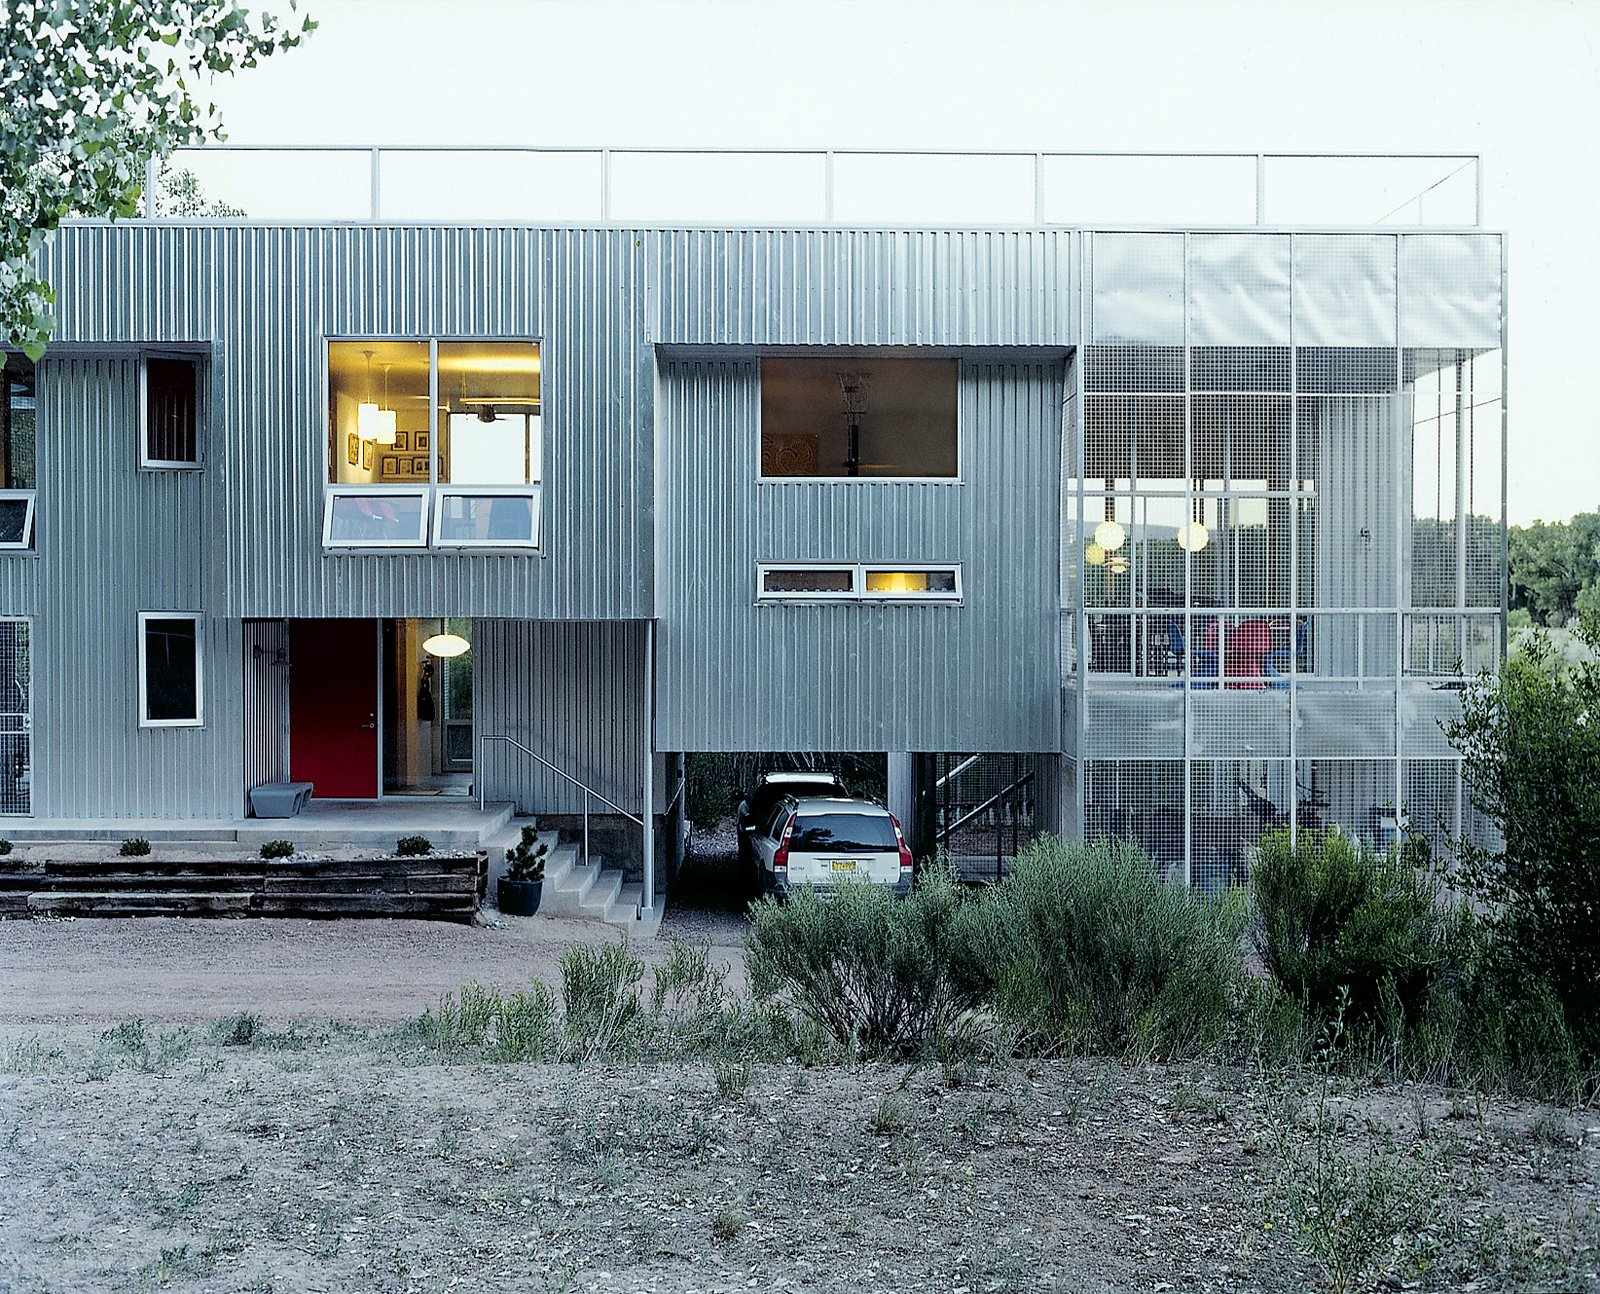 Thanks to passive solar and radiant floors, the metal-clad home is comfortable year-round.